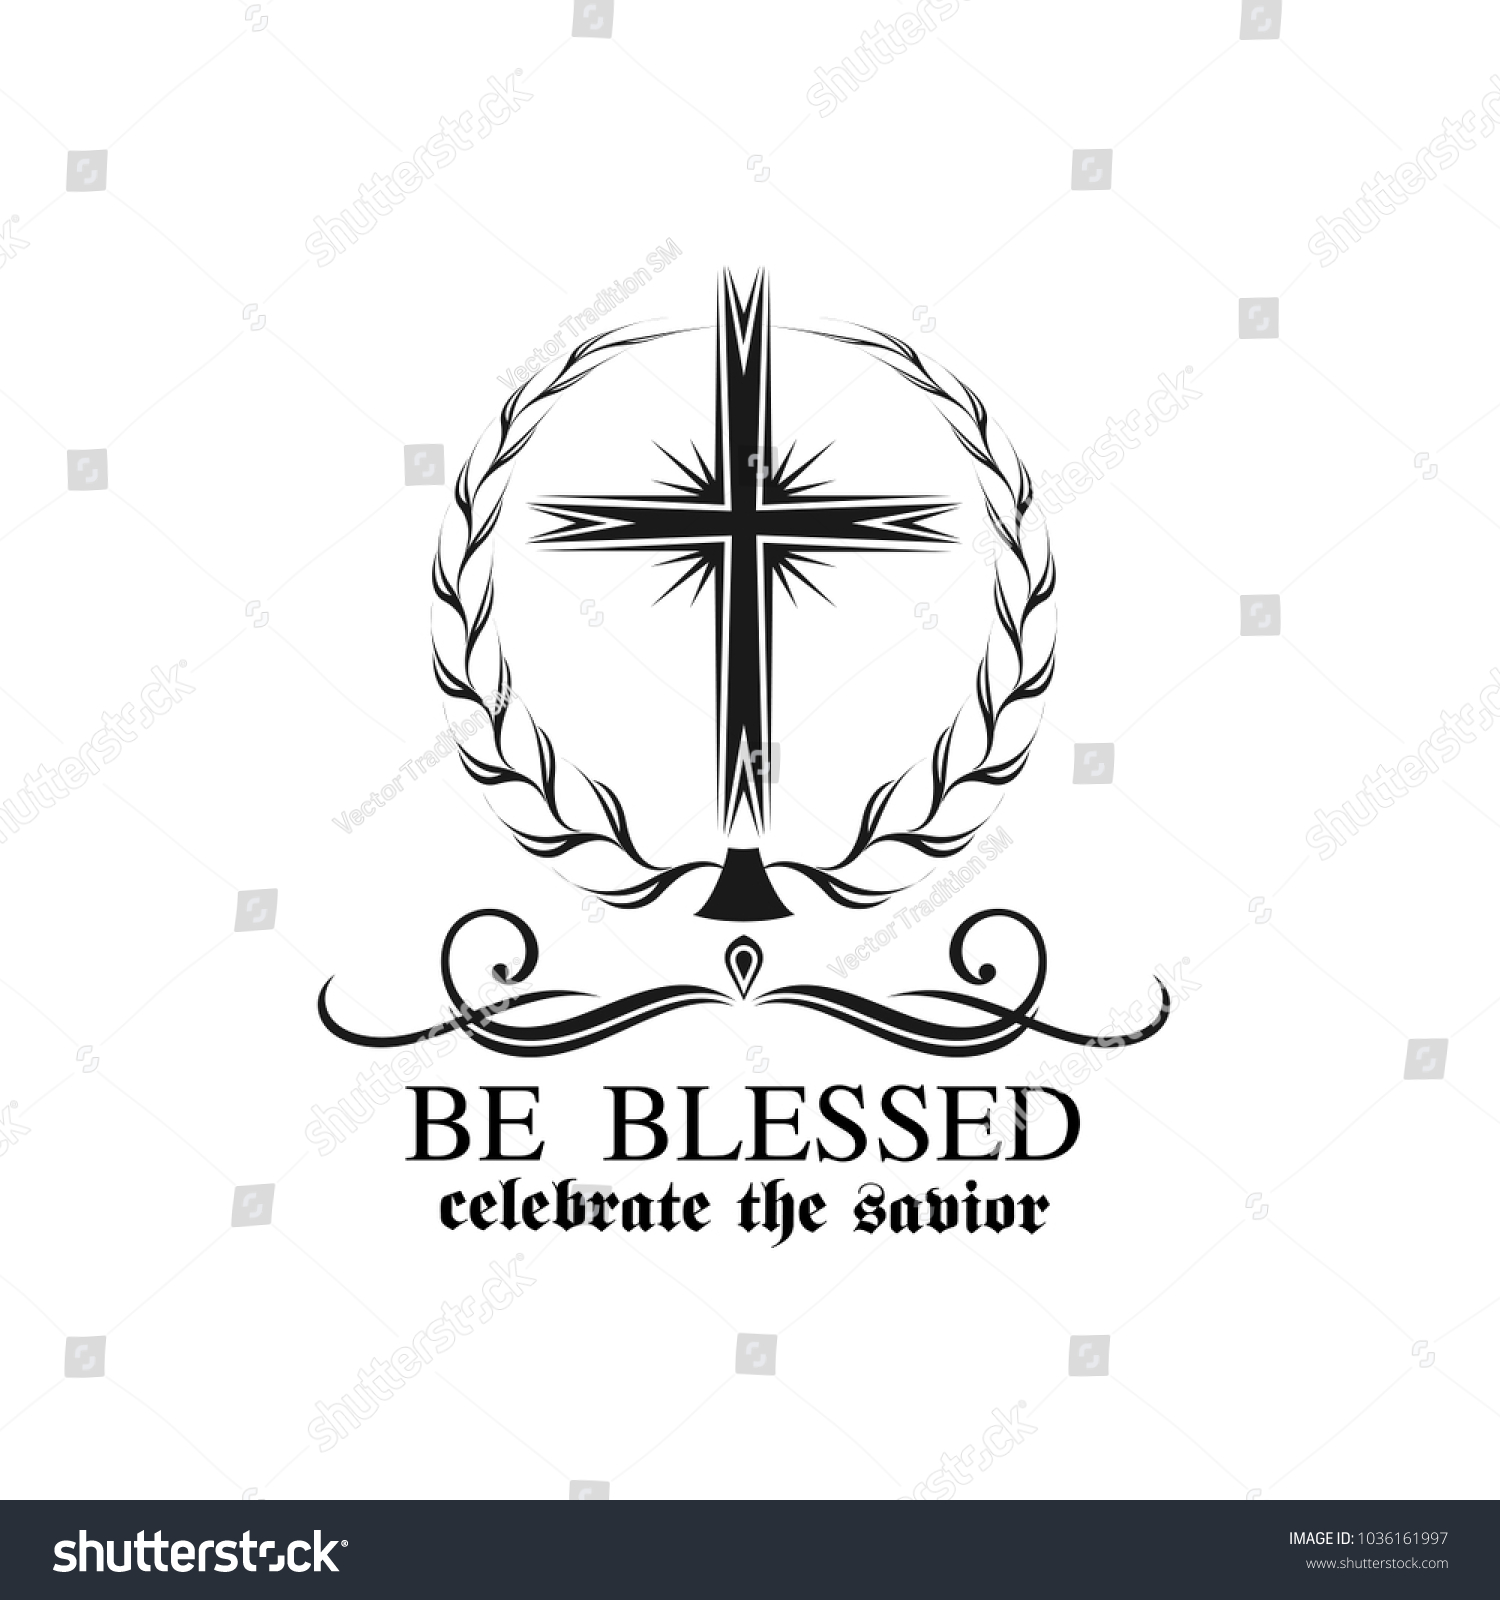 Happy easter crucifix cross icon resurrection stock vector happy easter crucifix cross icon for resurrection sunday greeting card design vector isolated symbol for buycottarizona Images